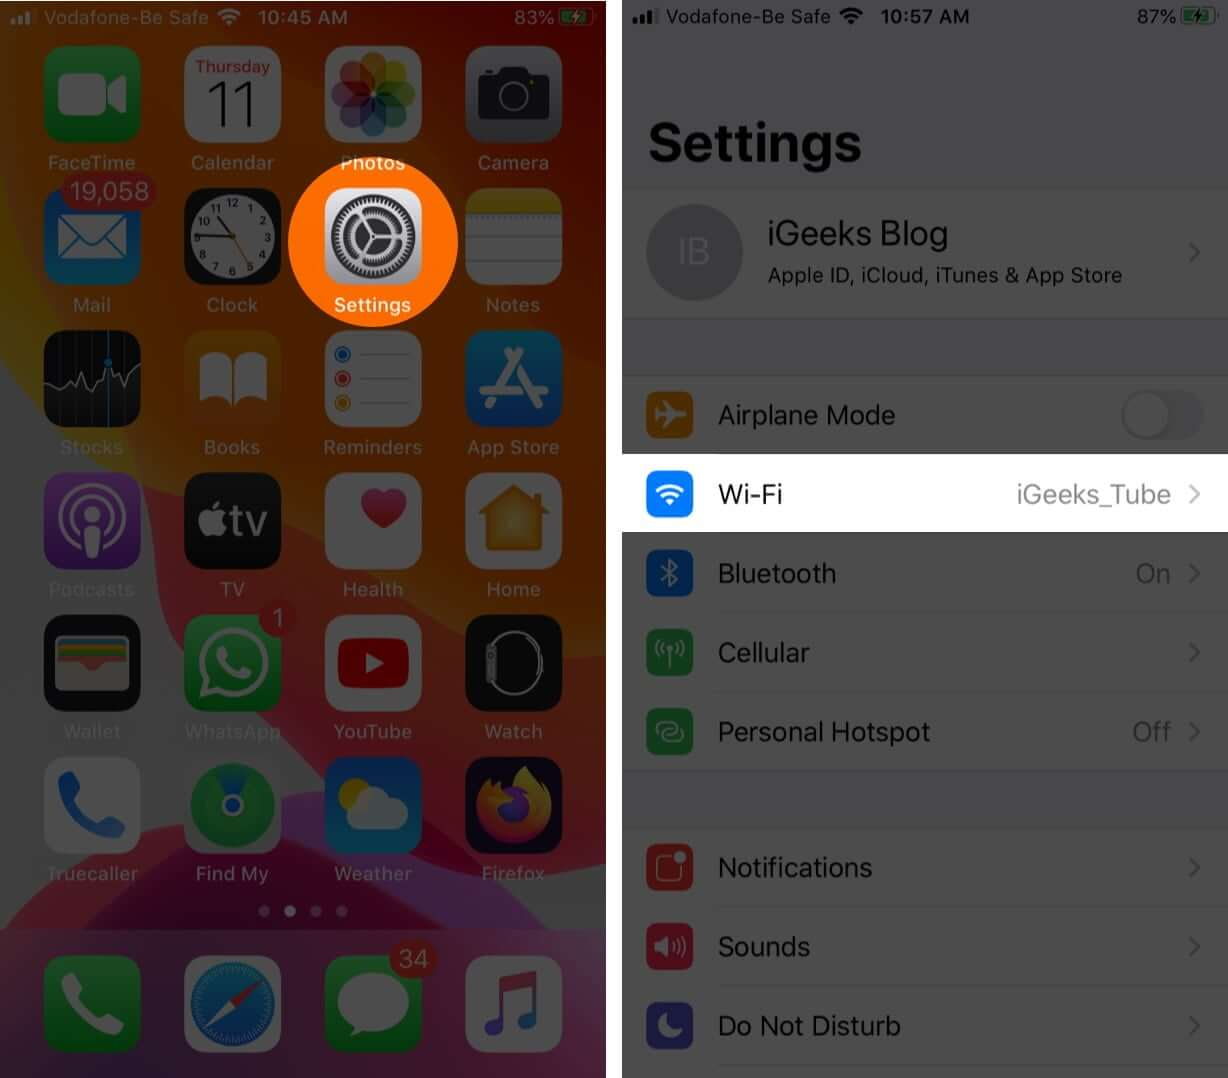 Launch Settings and Tap on Wi-Fi on iPhone